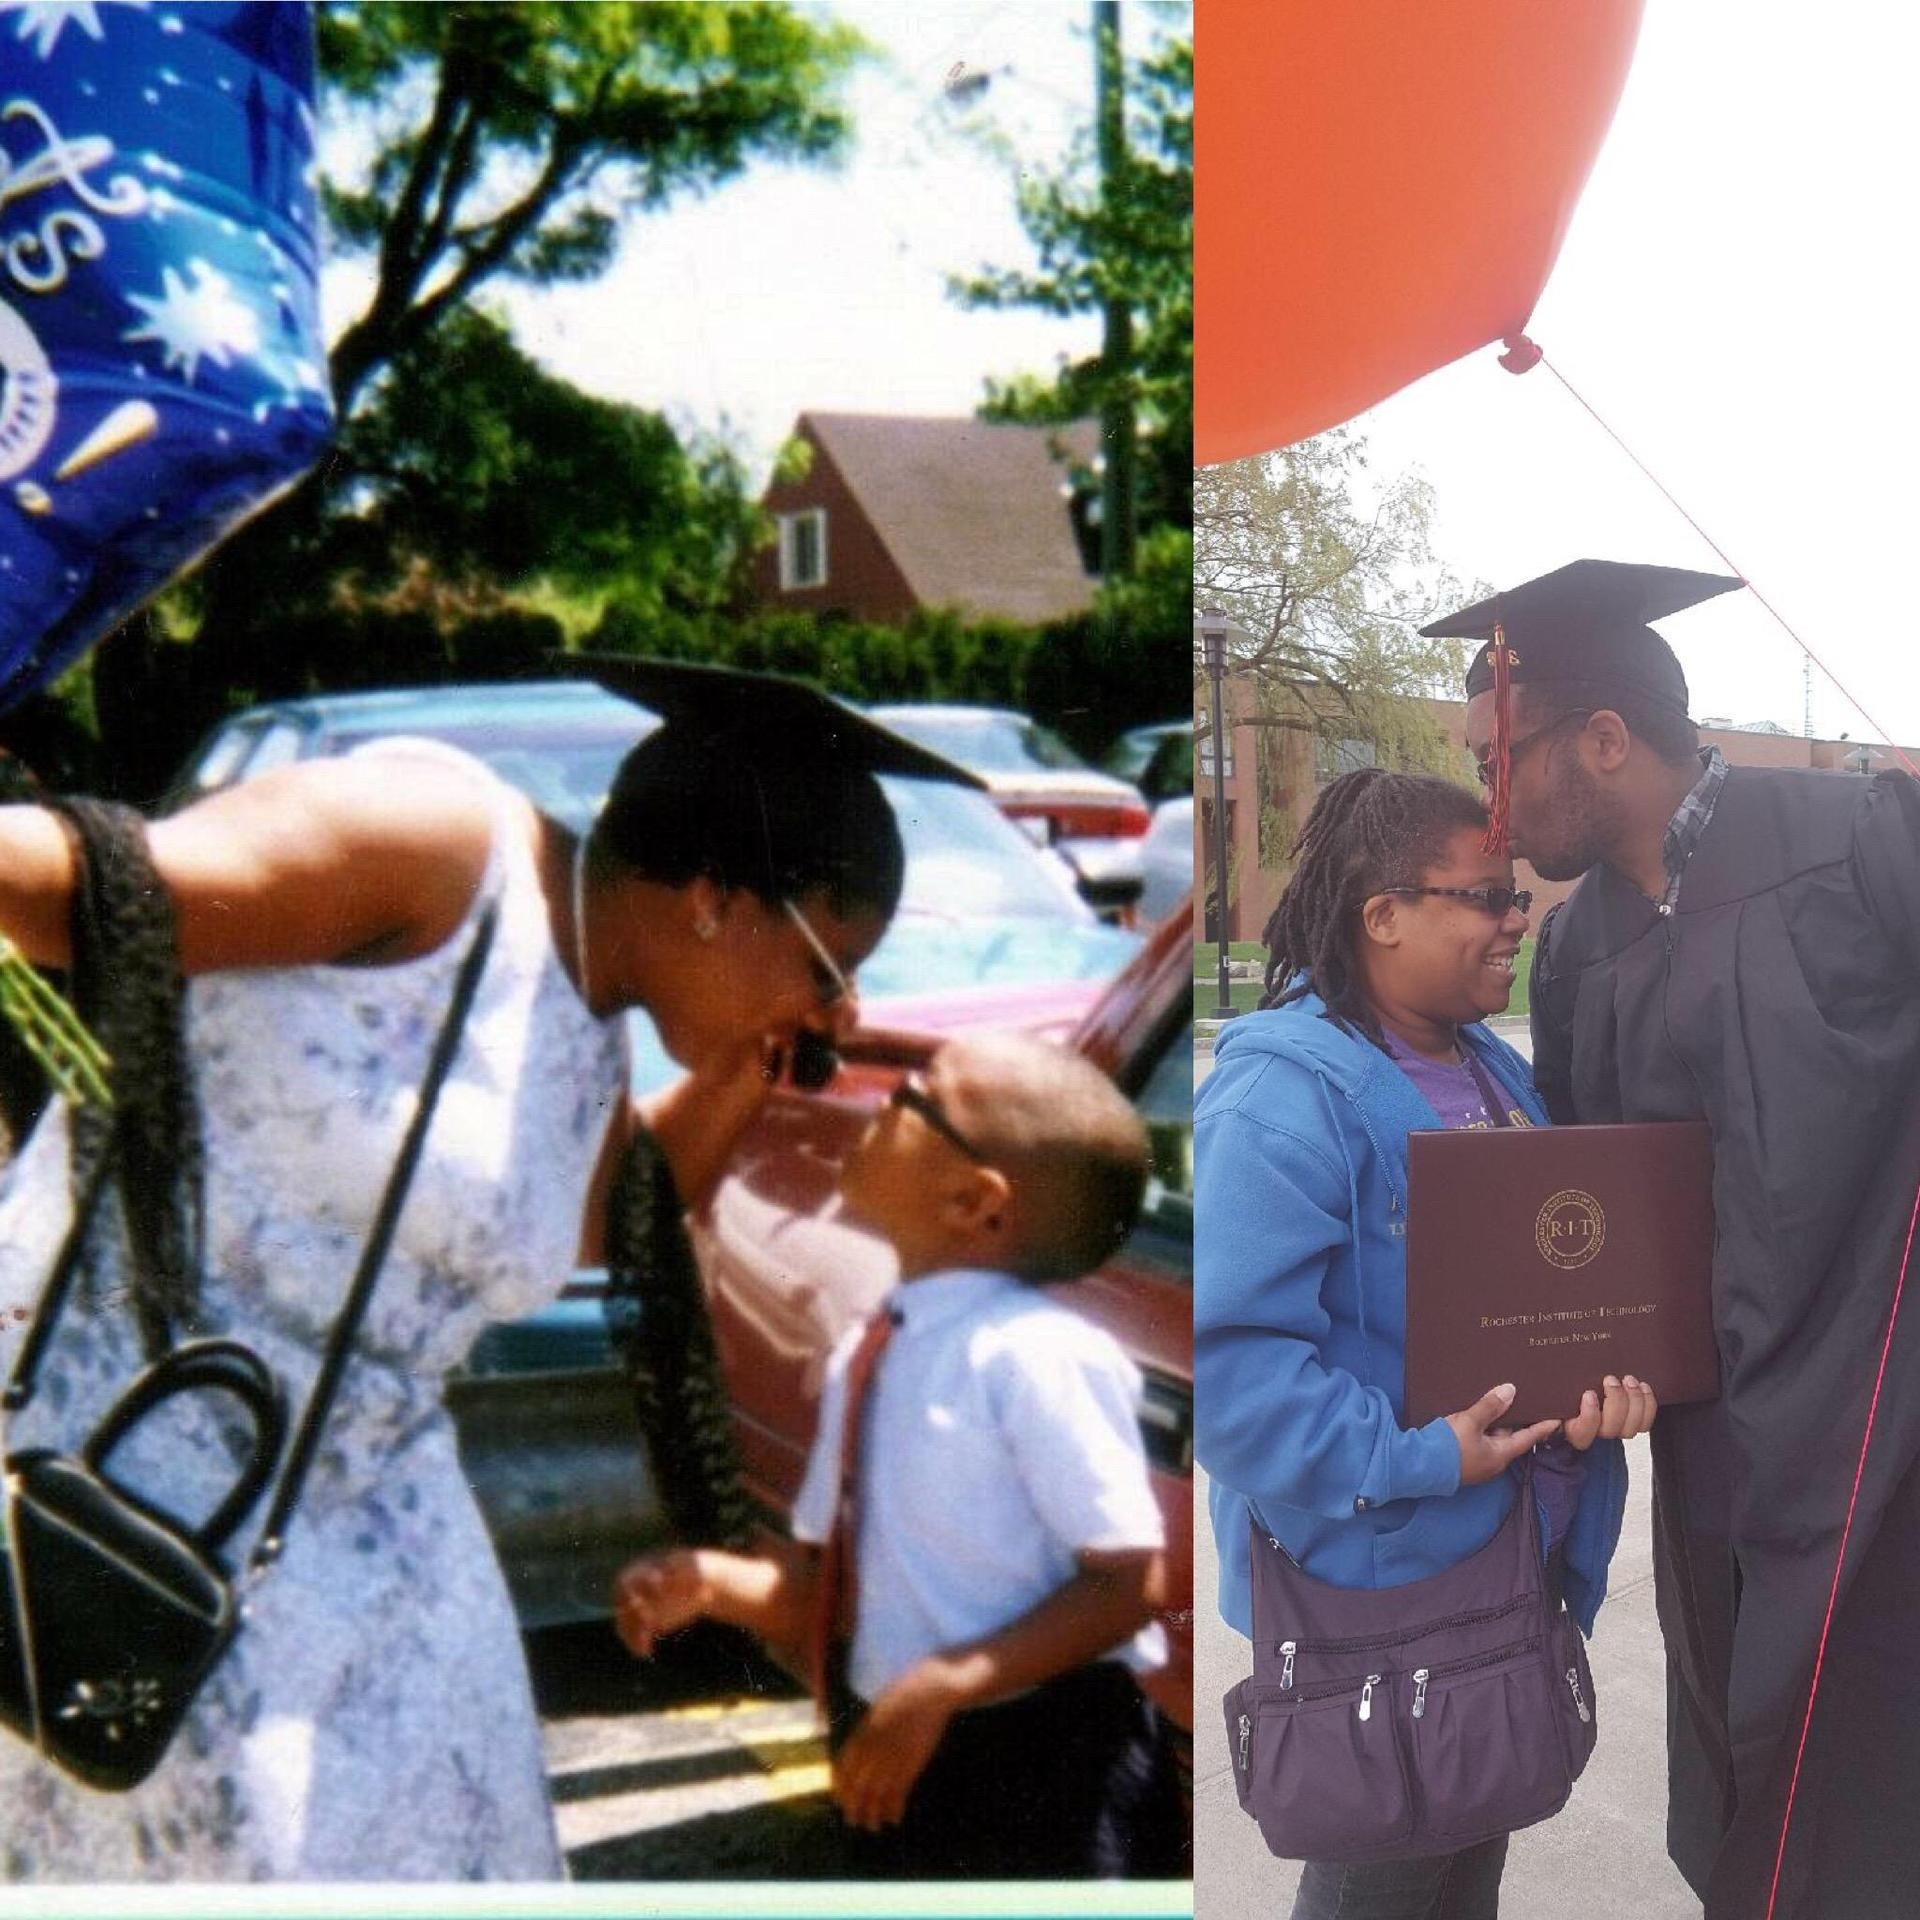 My undergraduate commencement in 2001 and my son's undergraduate commencement in 2014